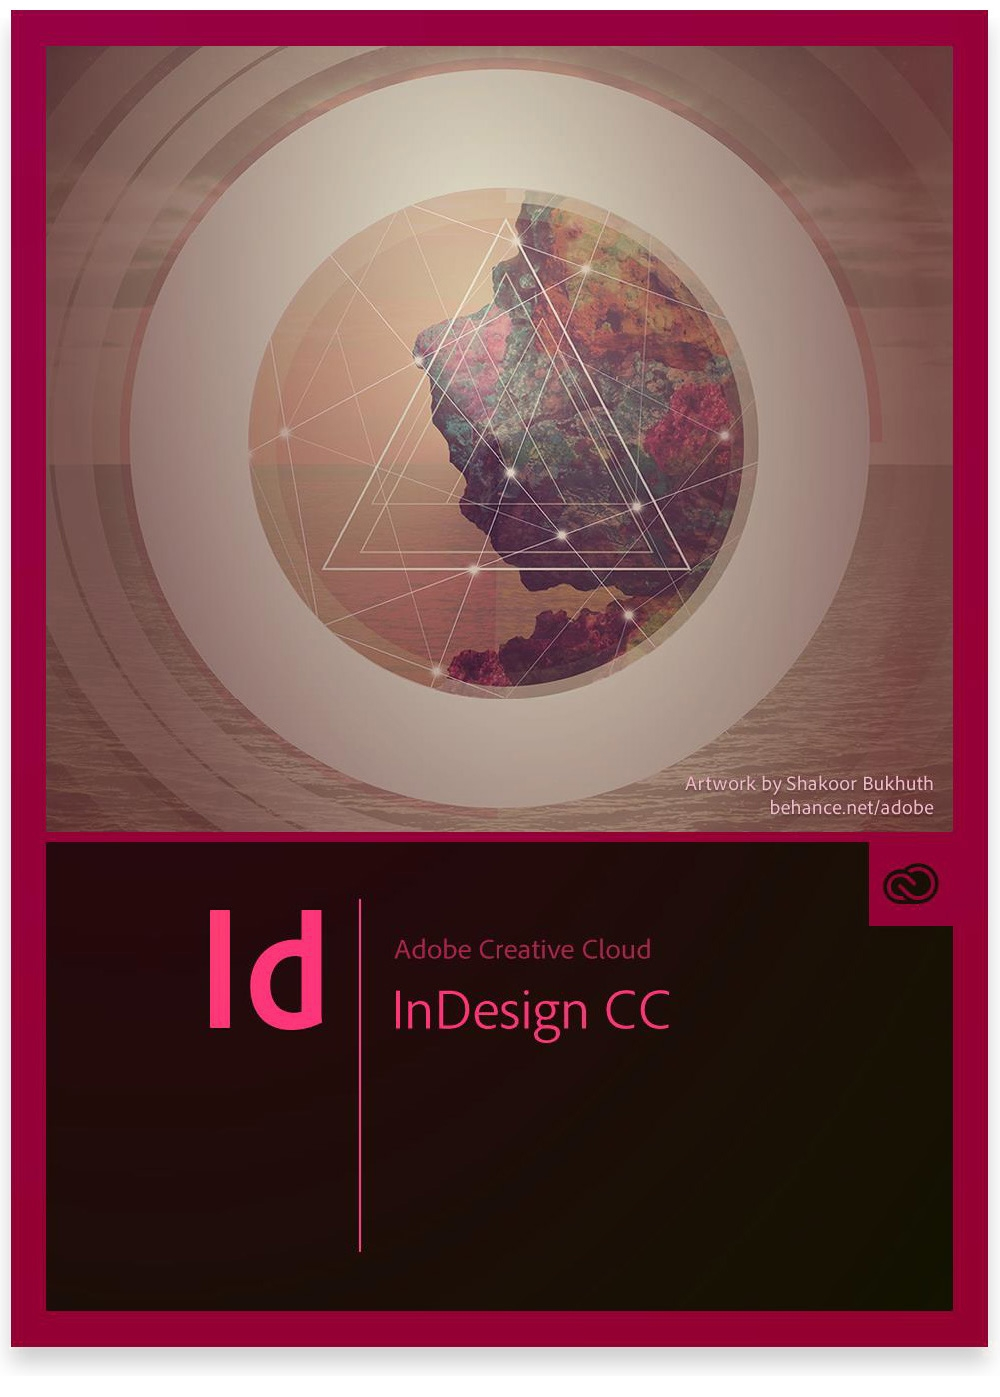 Adobe Creative Cloud 2014 Updates To Photoshop Cc